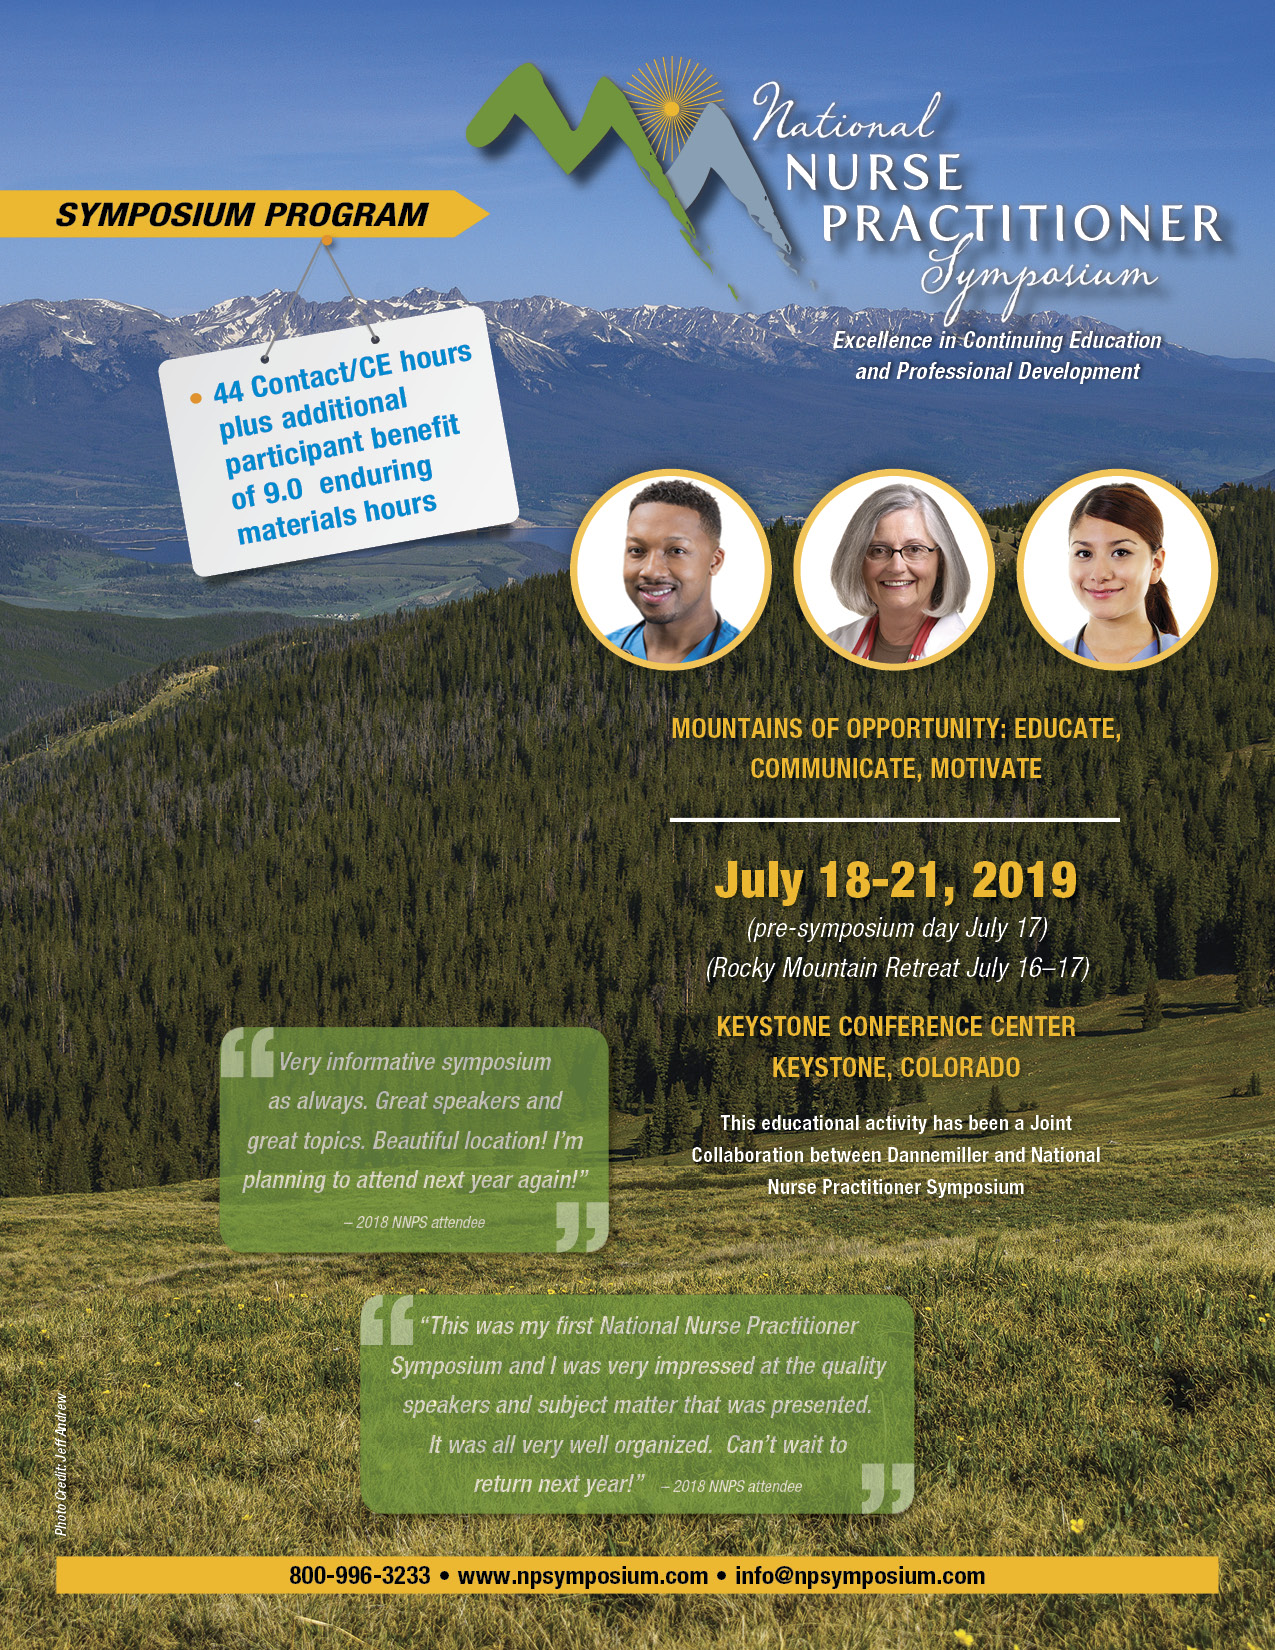 National Nurse Practitioner Symposium